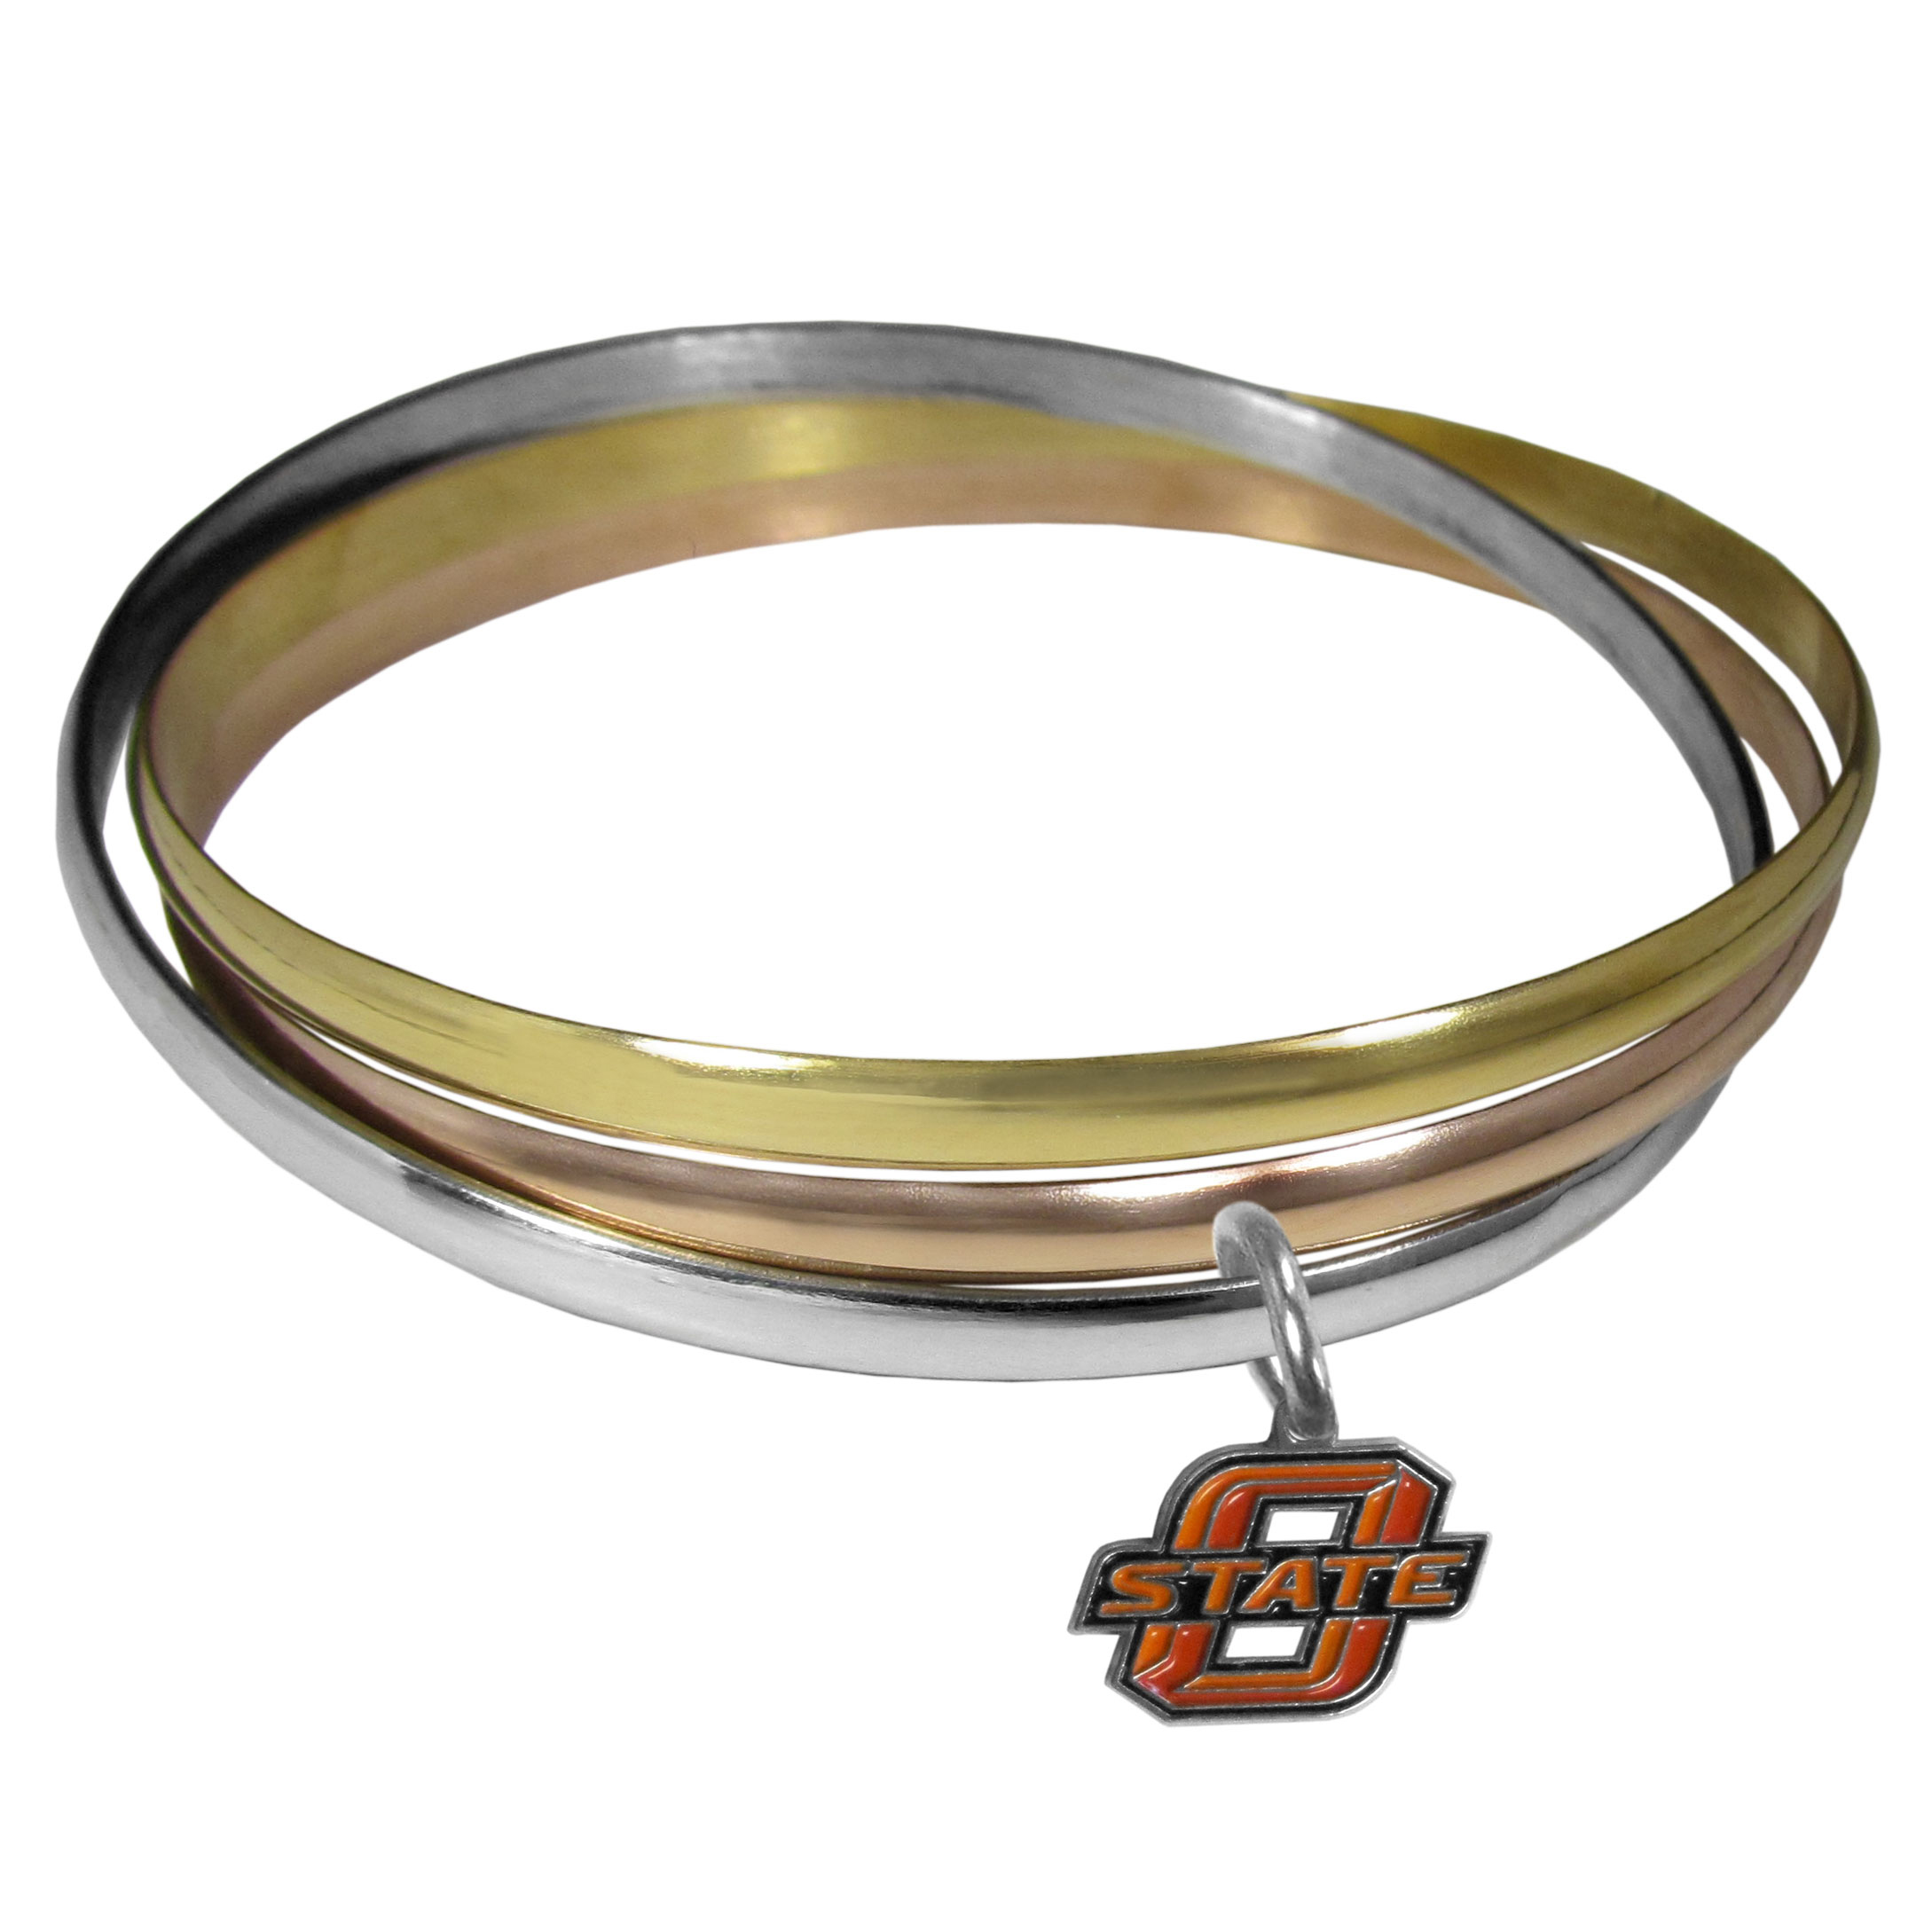 Oklahoma St. Cowboys Tri-color Bangle Bracelet - These beautiful bangles come in a interlocking style and feature a fully cast Oklahoma St. Cowboys charm with enameled team colors. The bracelet has a silver toned bangle, gold tone bangle and brass toned bangle.